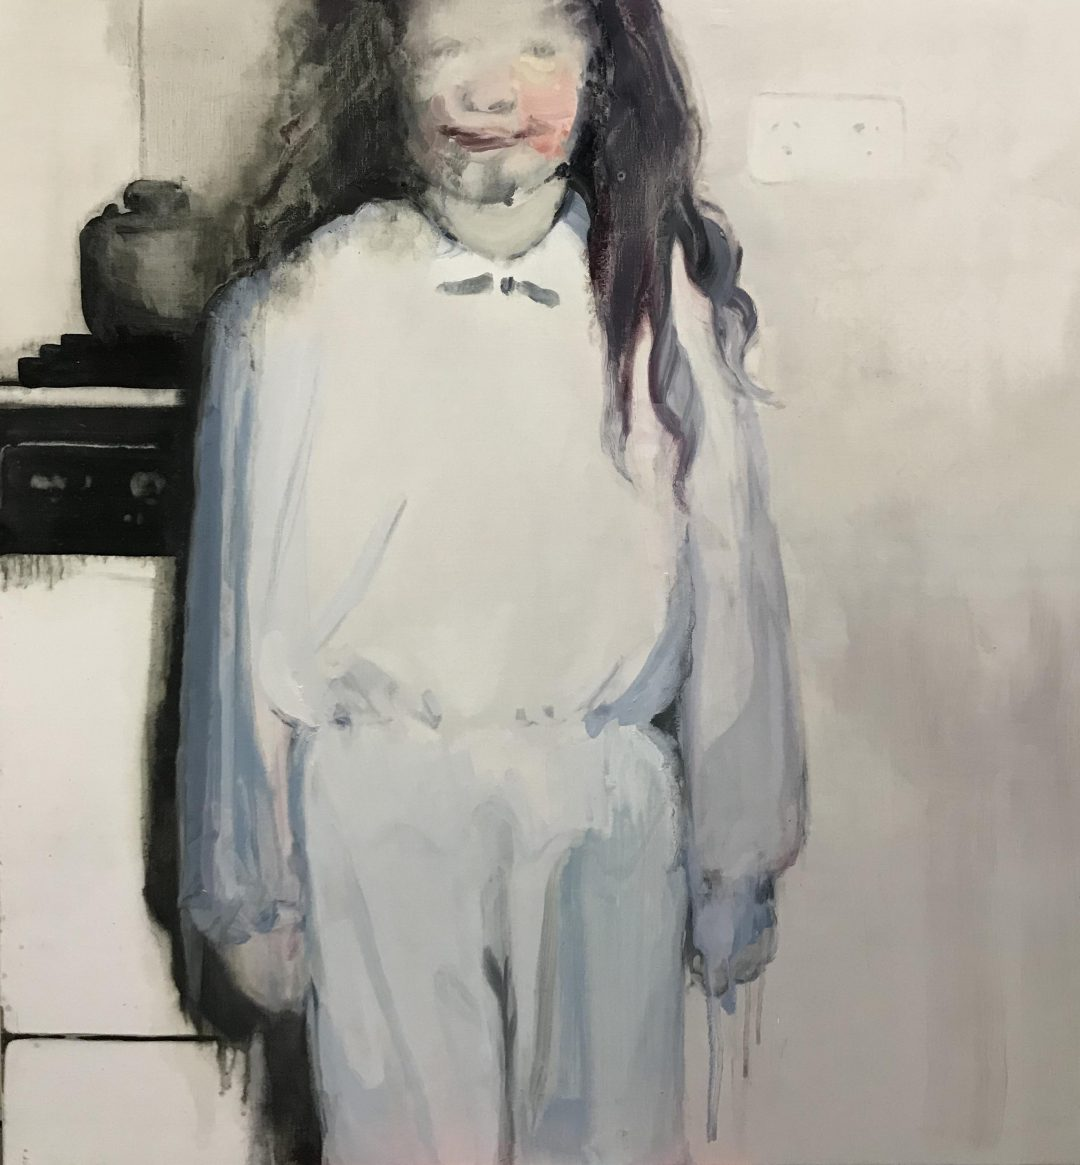 Fiona McMonagle, Toast with jam 2018 oil on linen 77 x 72.5 cm Winner of the 2019 Local Art Prize